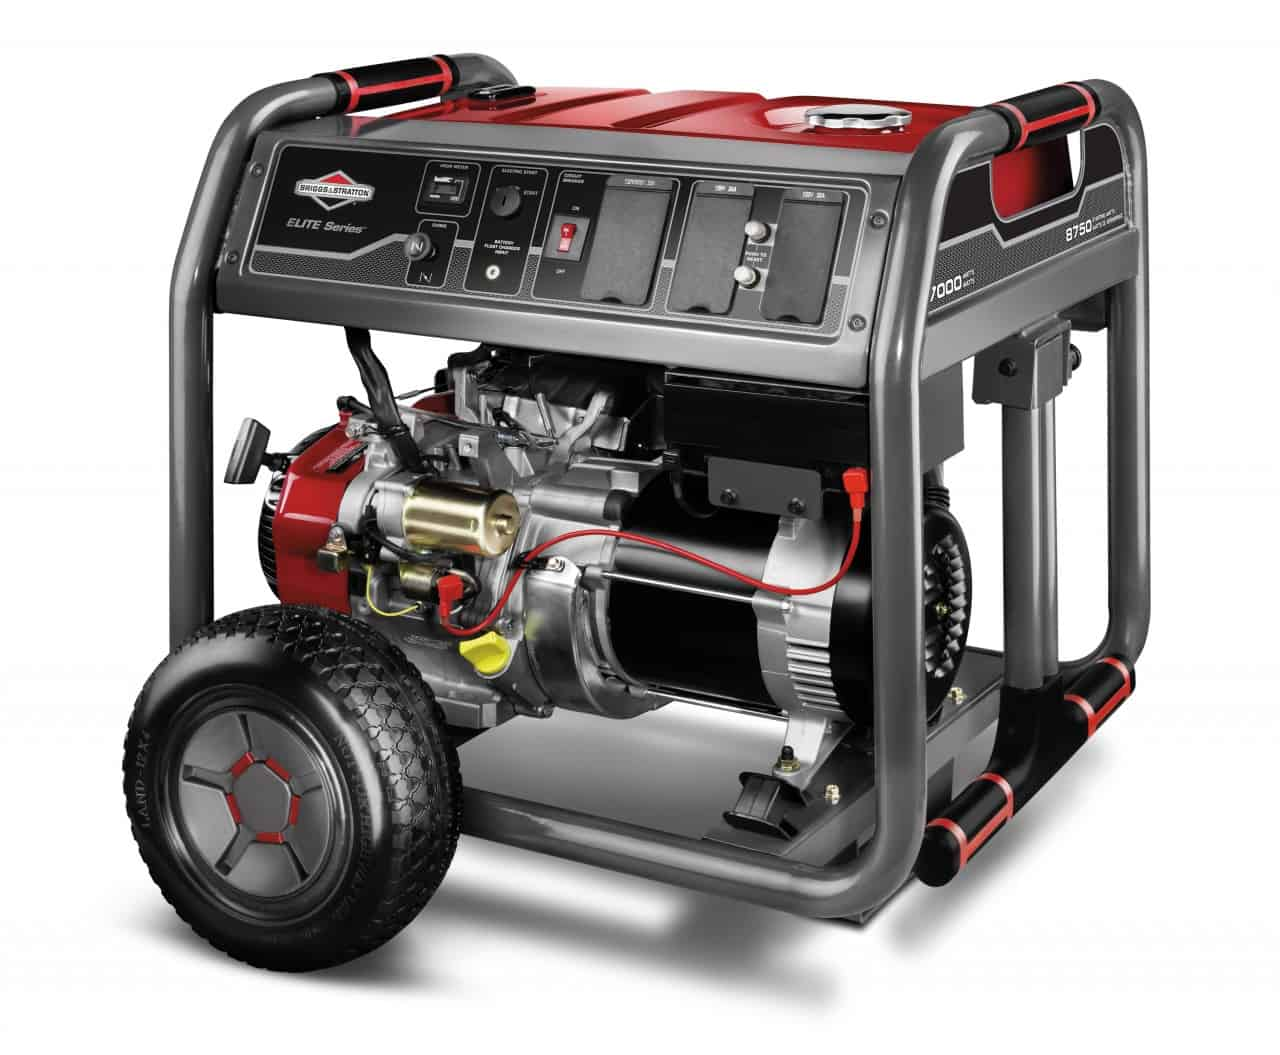 Steps to Secure Protect Portable Generators During Use